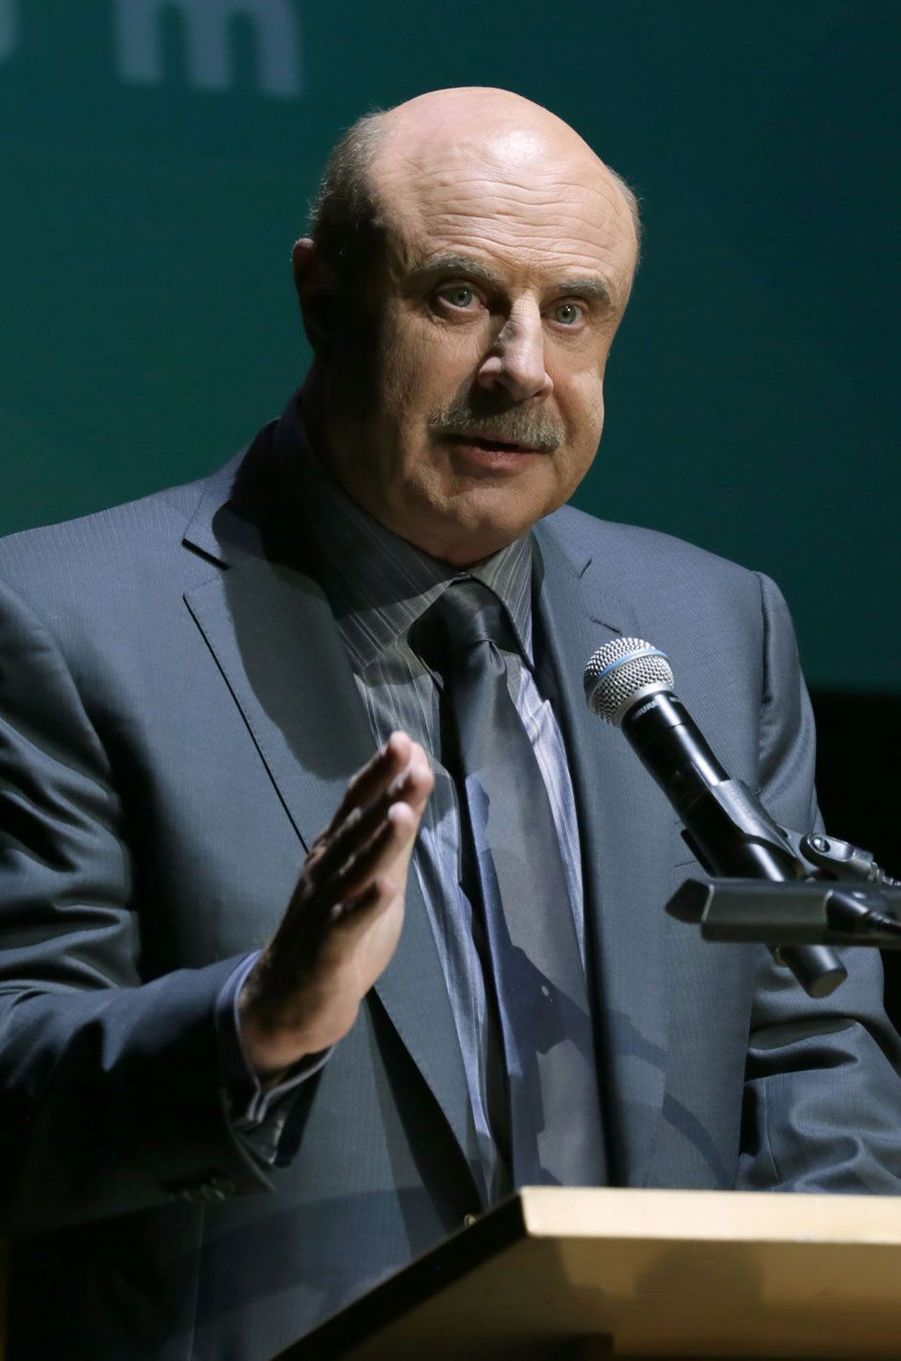 Dr. Phil Mcgraw, 79 millions de dollars